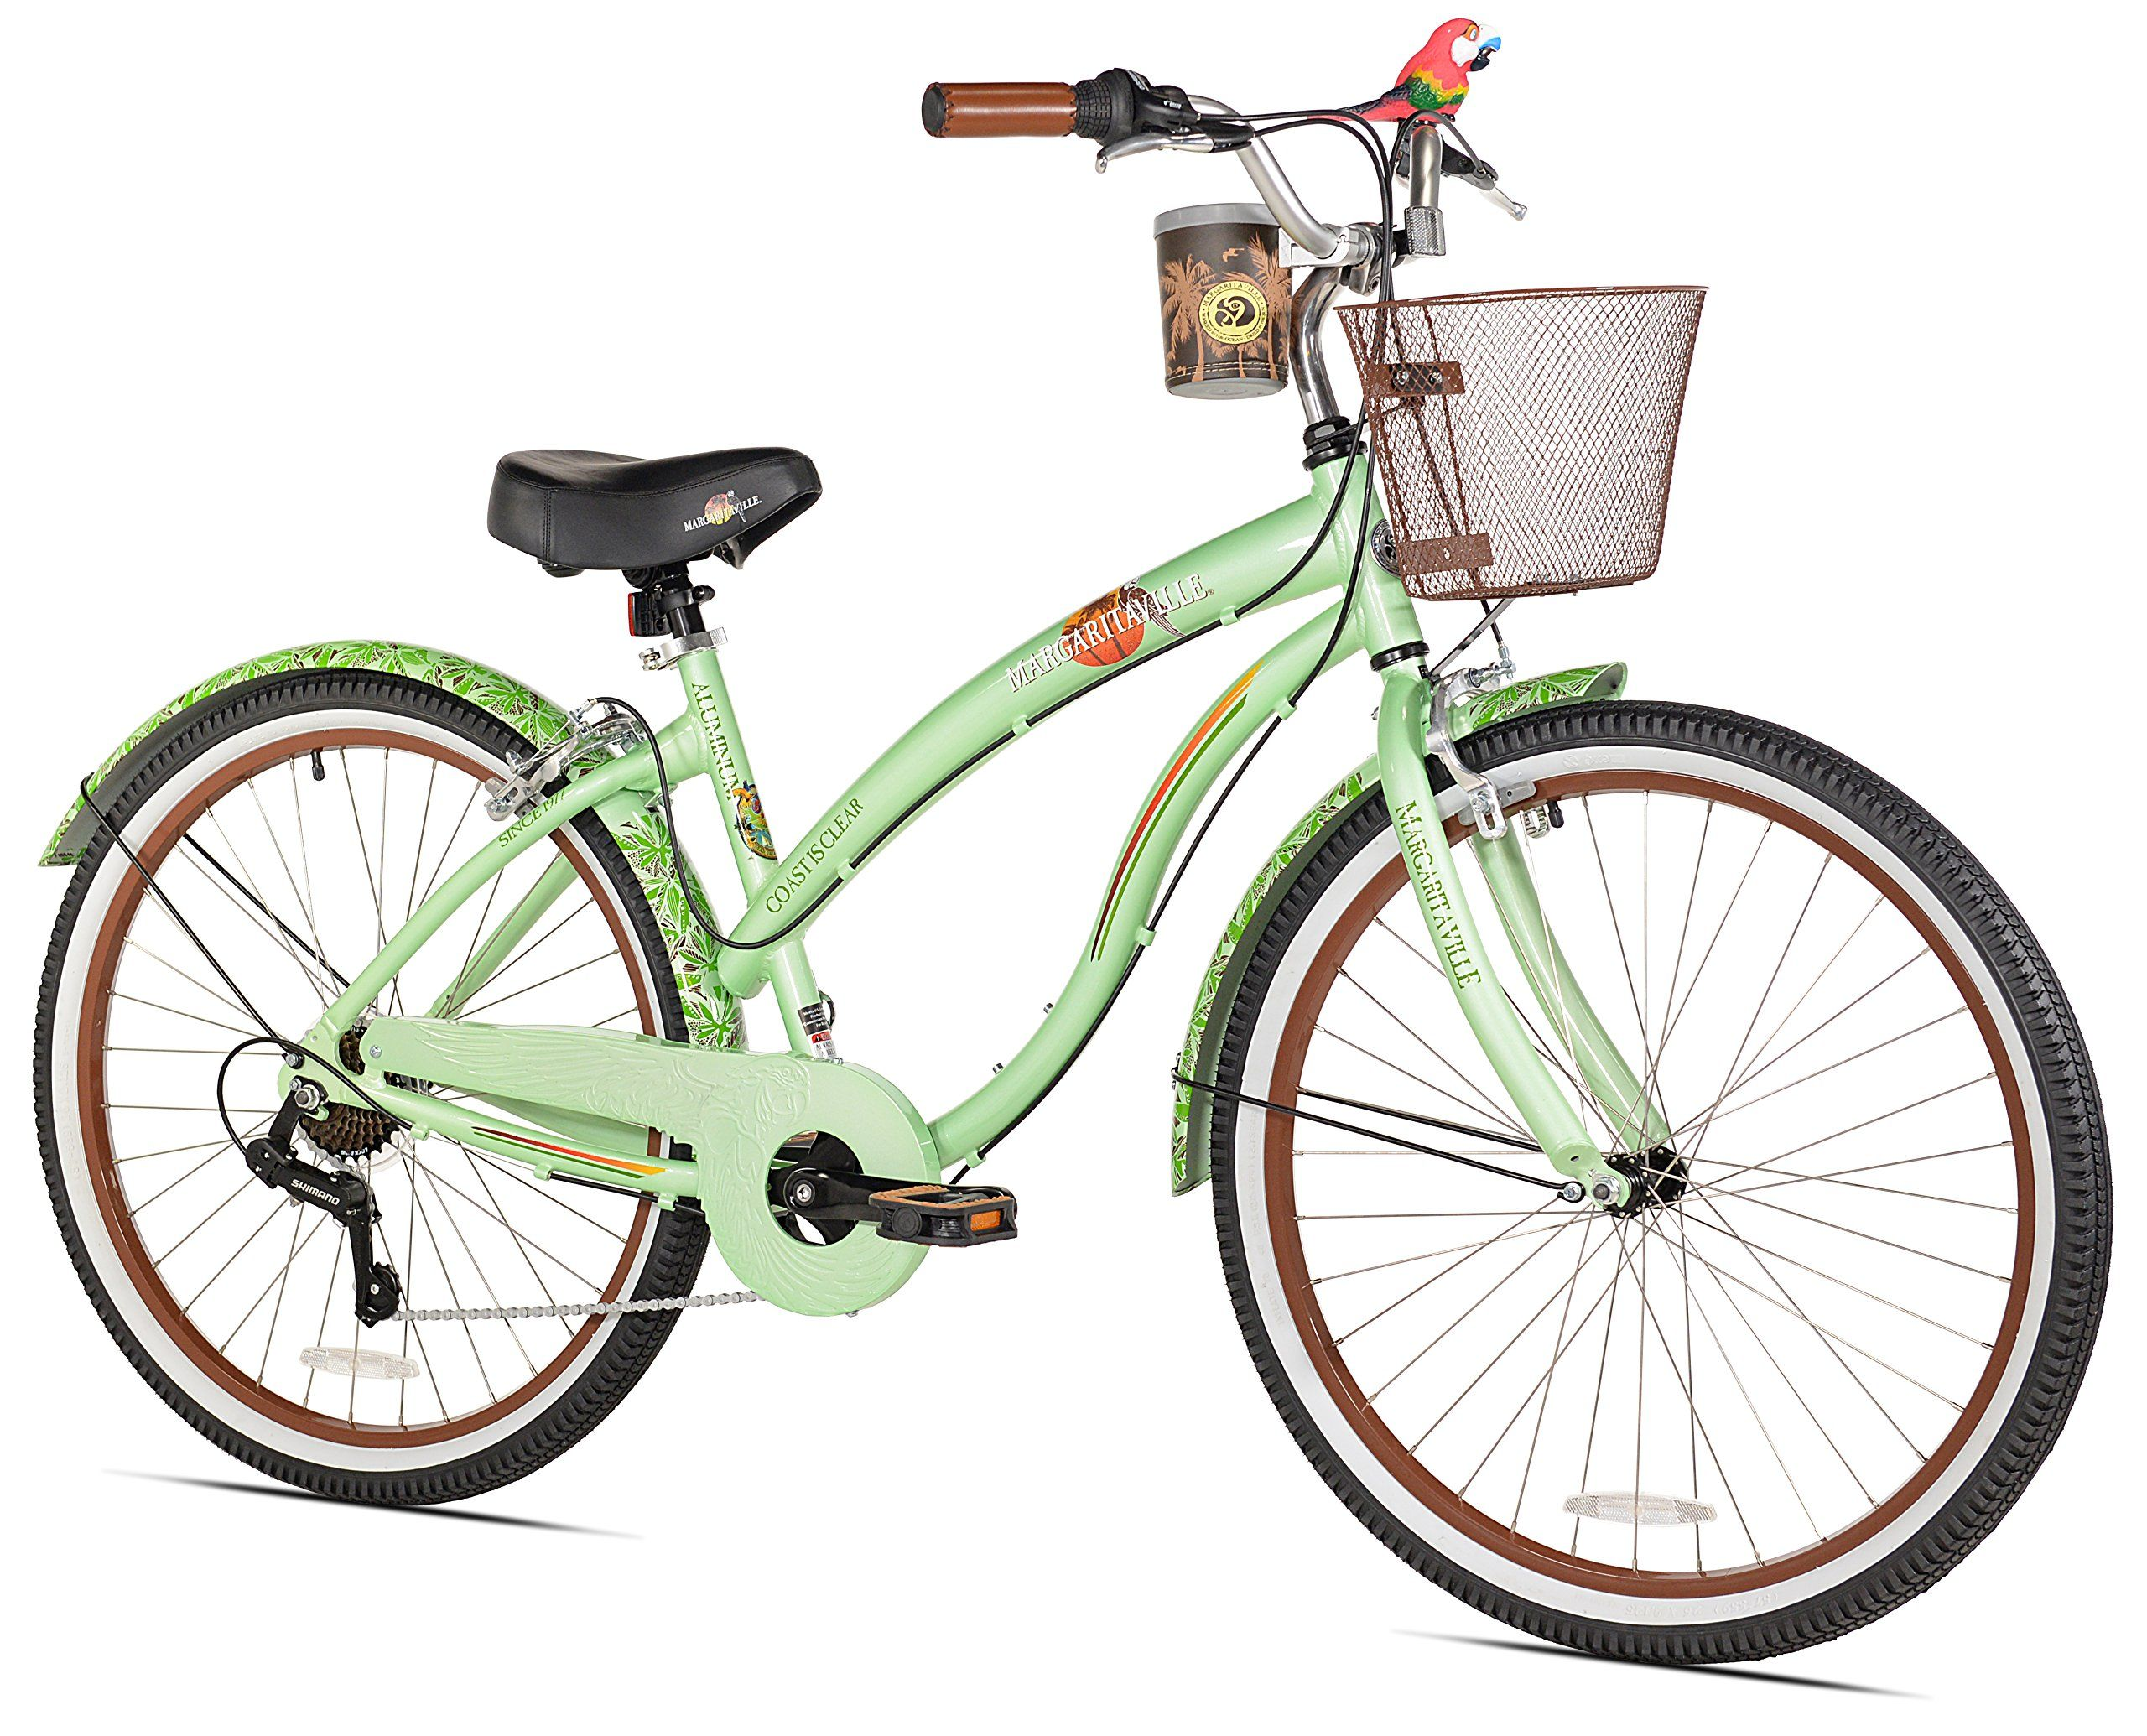 Margaritaville coast is clear women s beach cruiser bike aluminum frame shimano 7 speed drive train with revo twist shifters alloy front and rear side